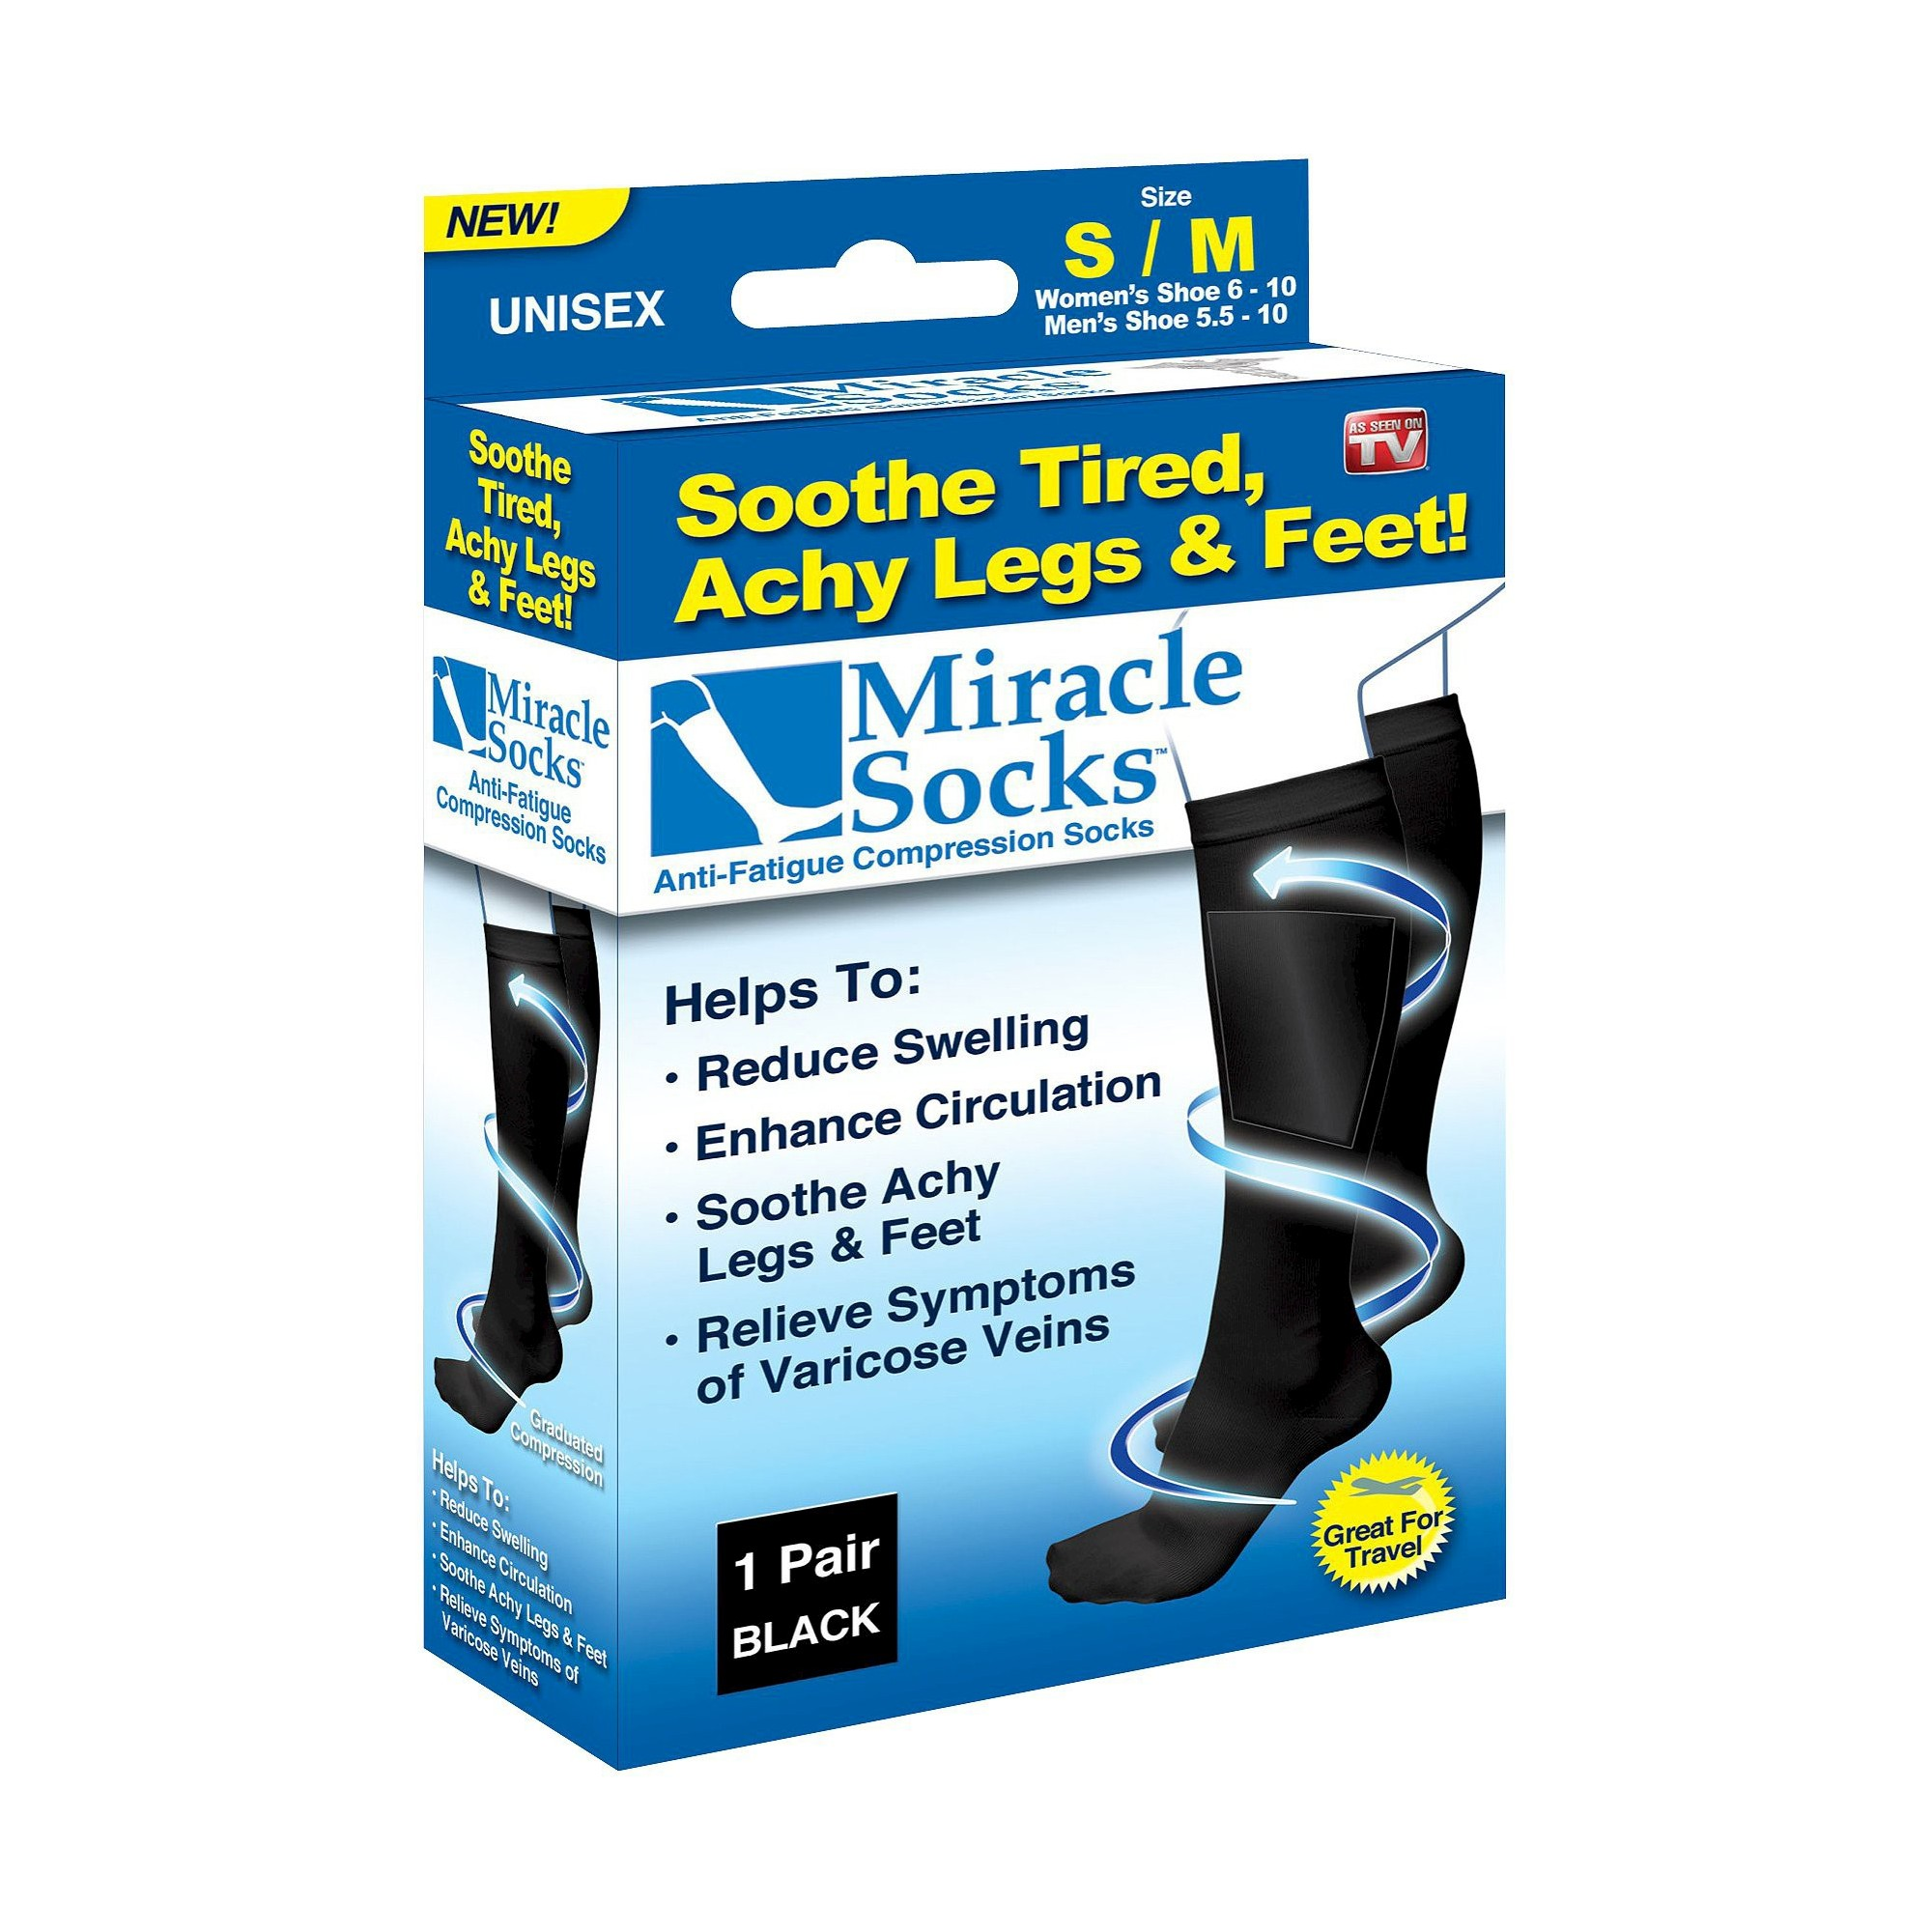 As Seen on TV Miracle Socks Anti-Fatigue Compression Socks - Black S/M, Size: Small/Medium